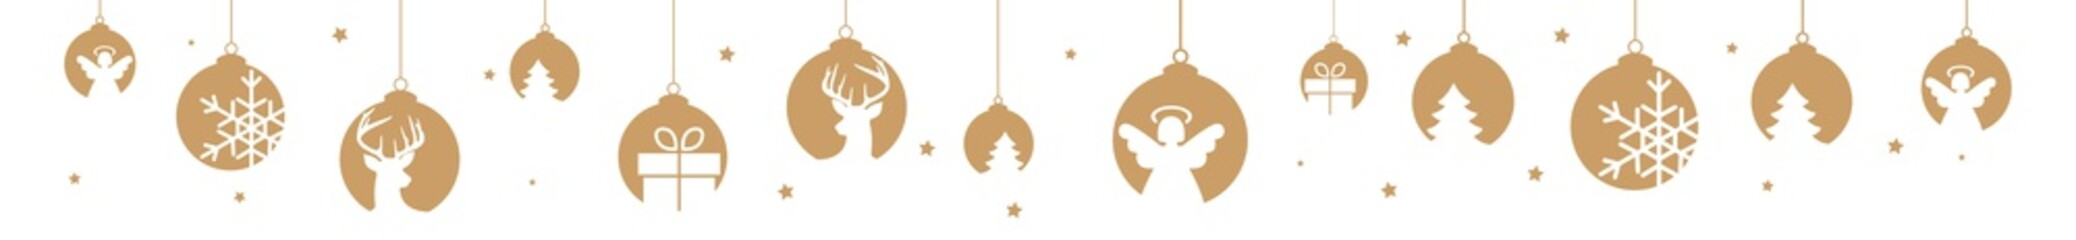 christmas banner golden hanging decorations objects xmas